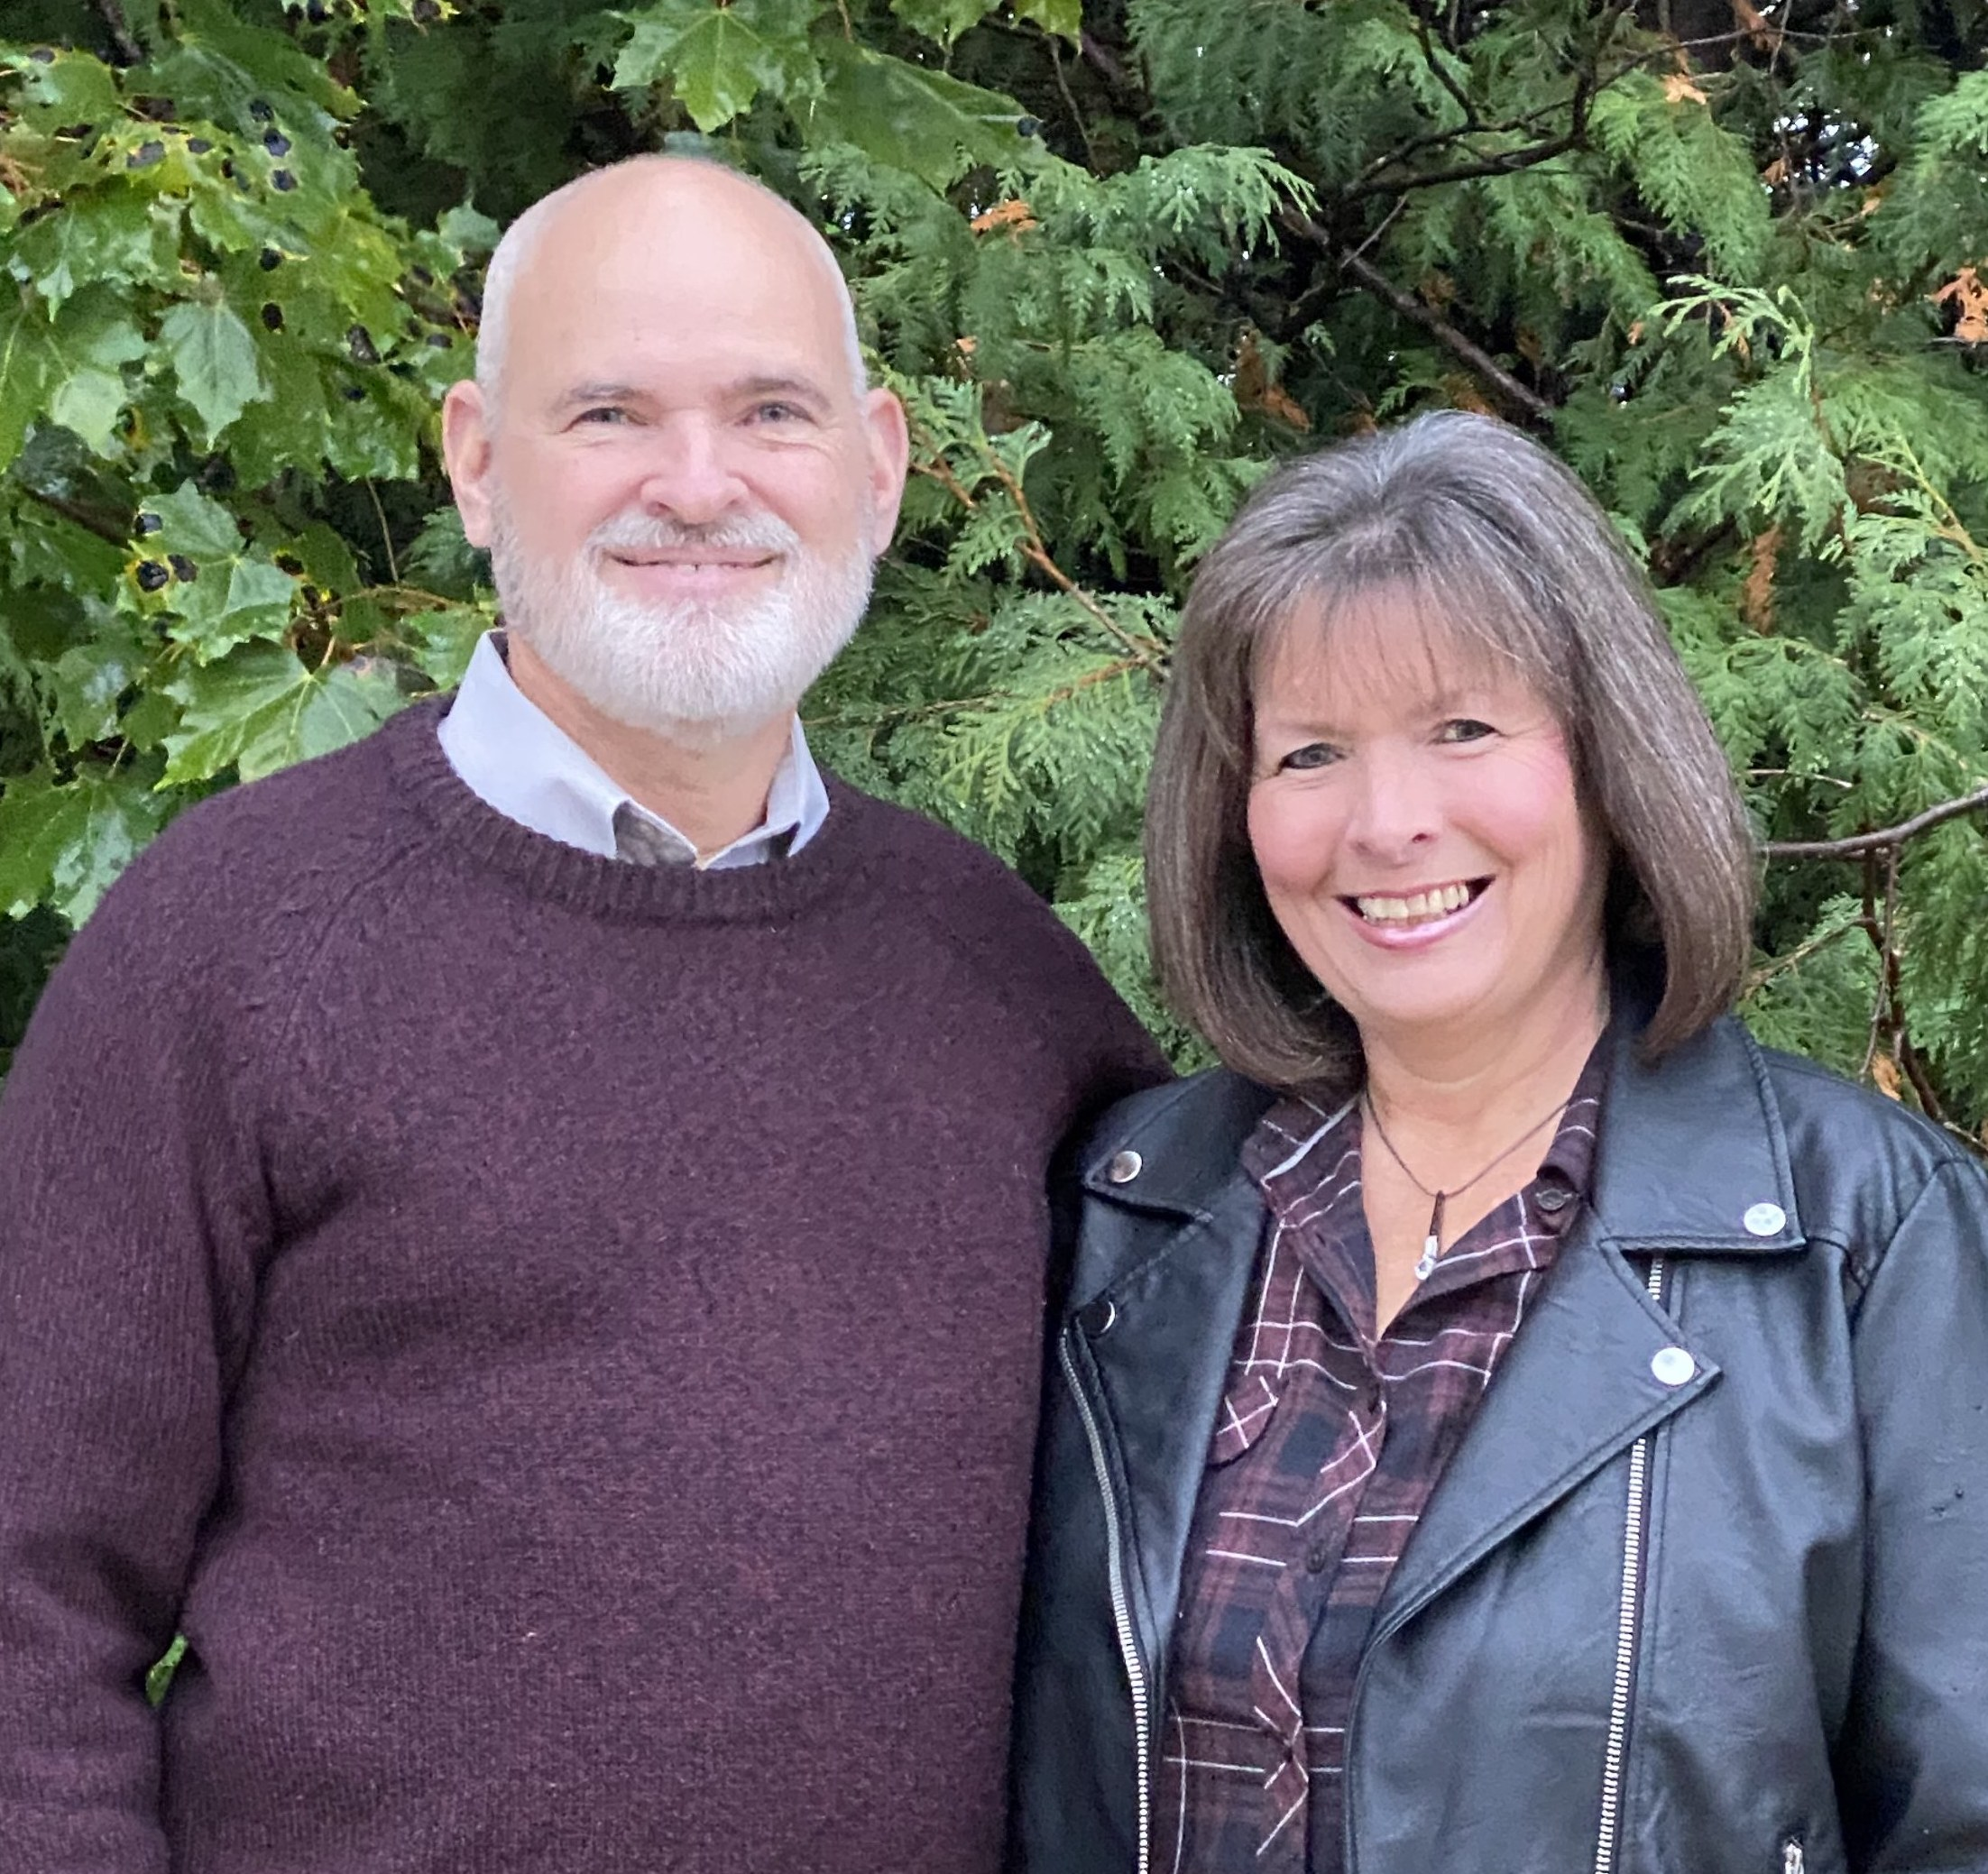 Barry and Cathy Richards, Ethnos Canada missionaries